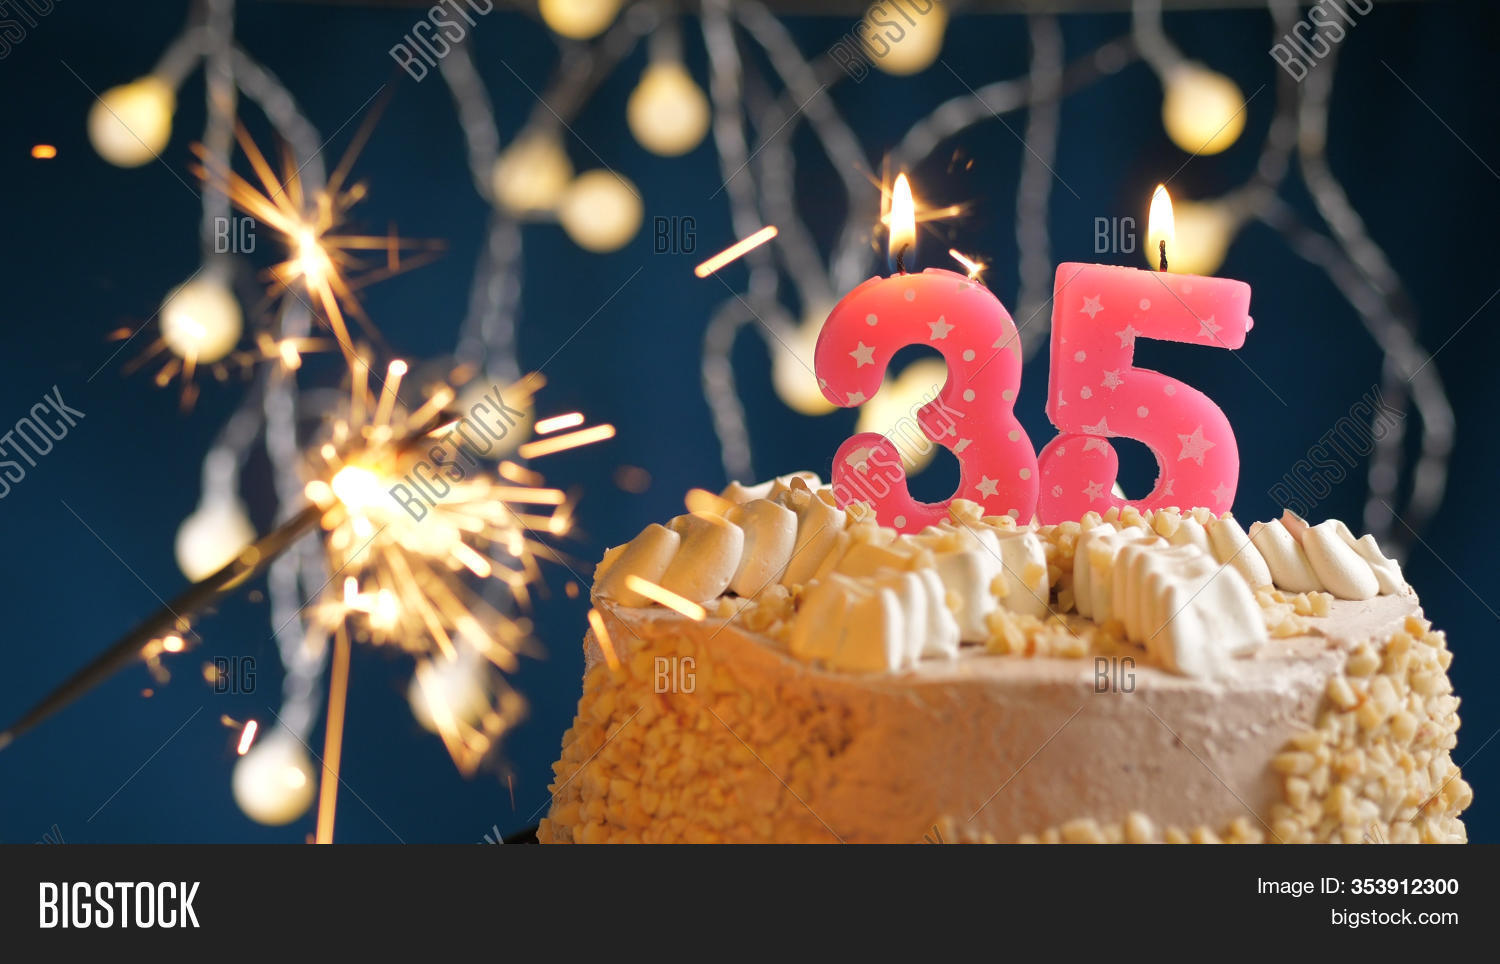 Groovy Birthday Cake 35 Image Photo Free Trial Bigstock Funny Birthday Cards Online Alyptdamsfinfo